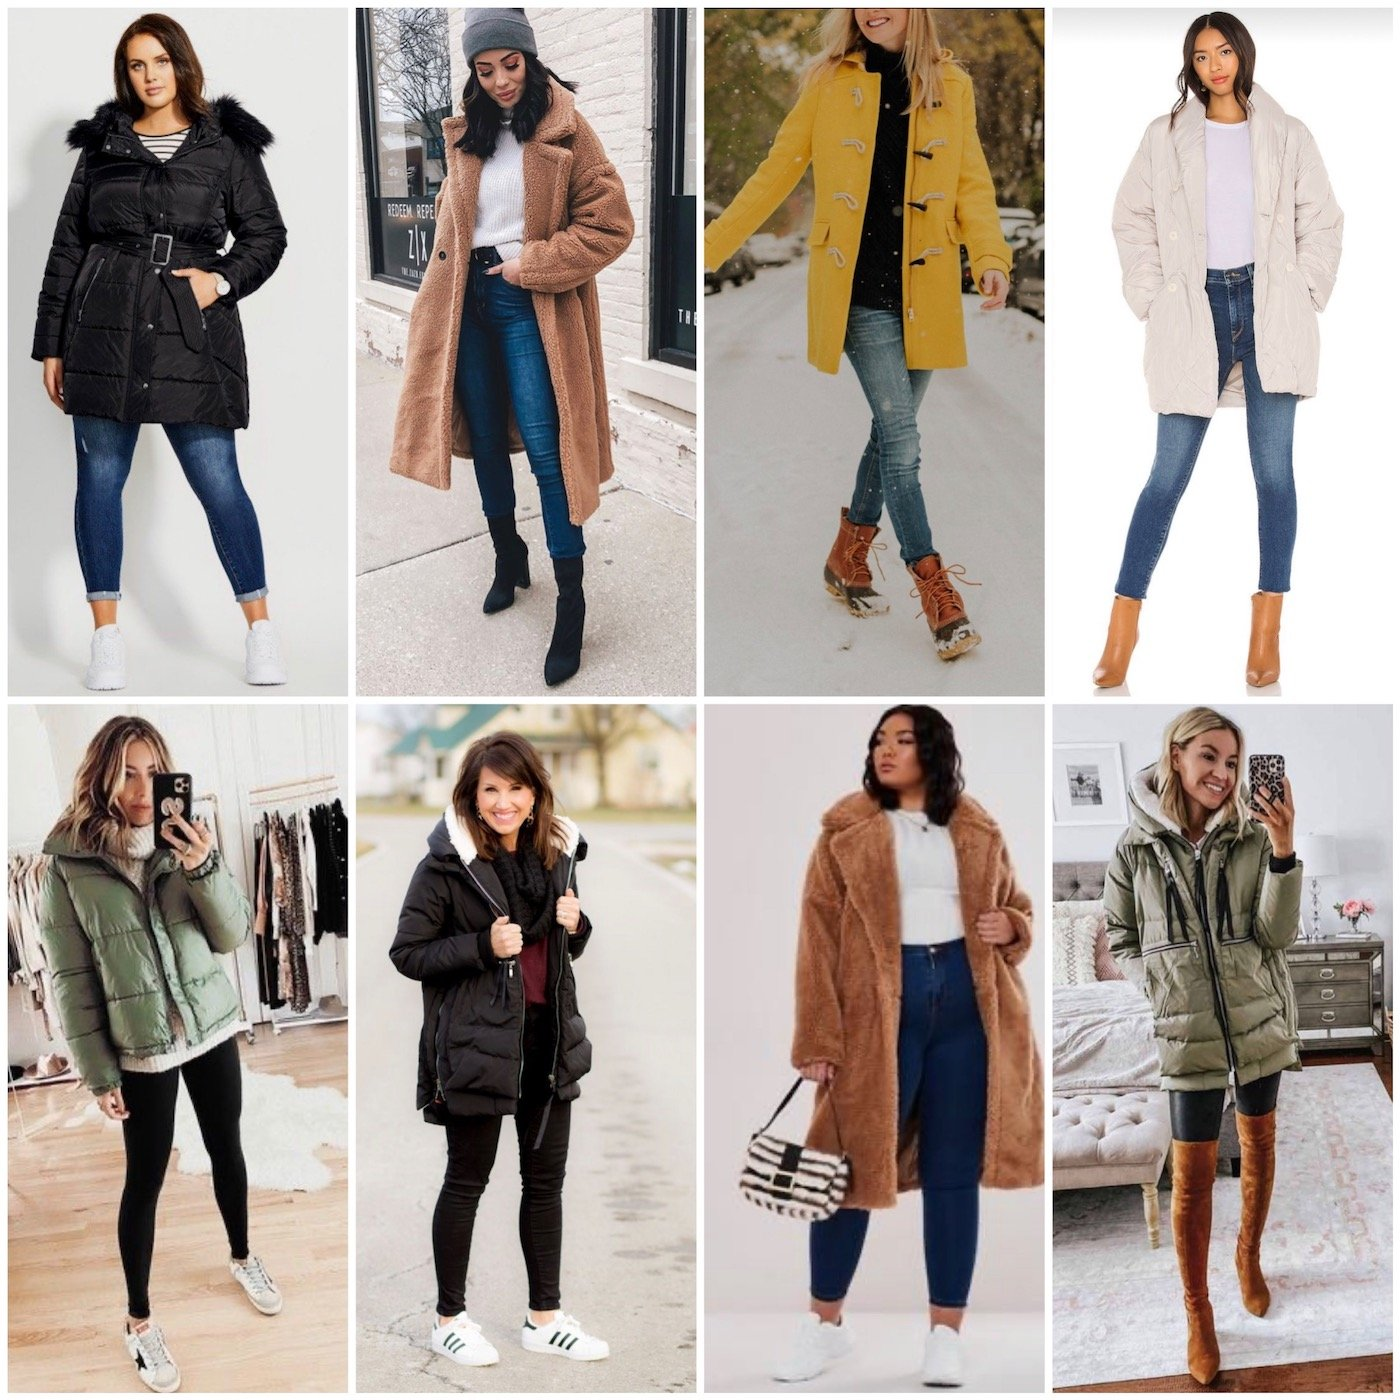 winter coat outfits on other women